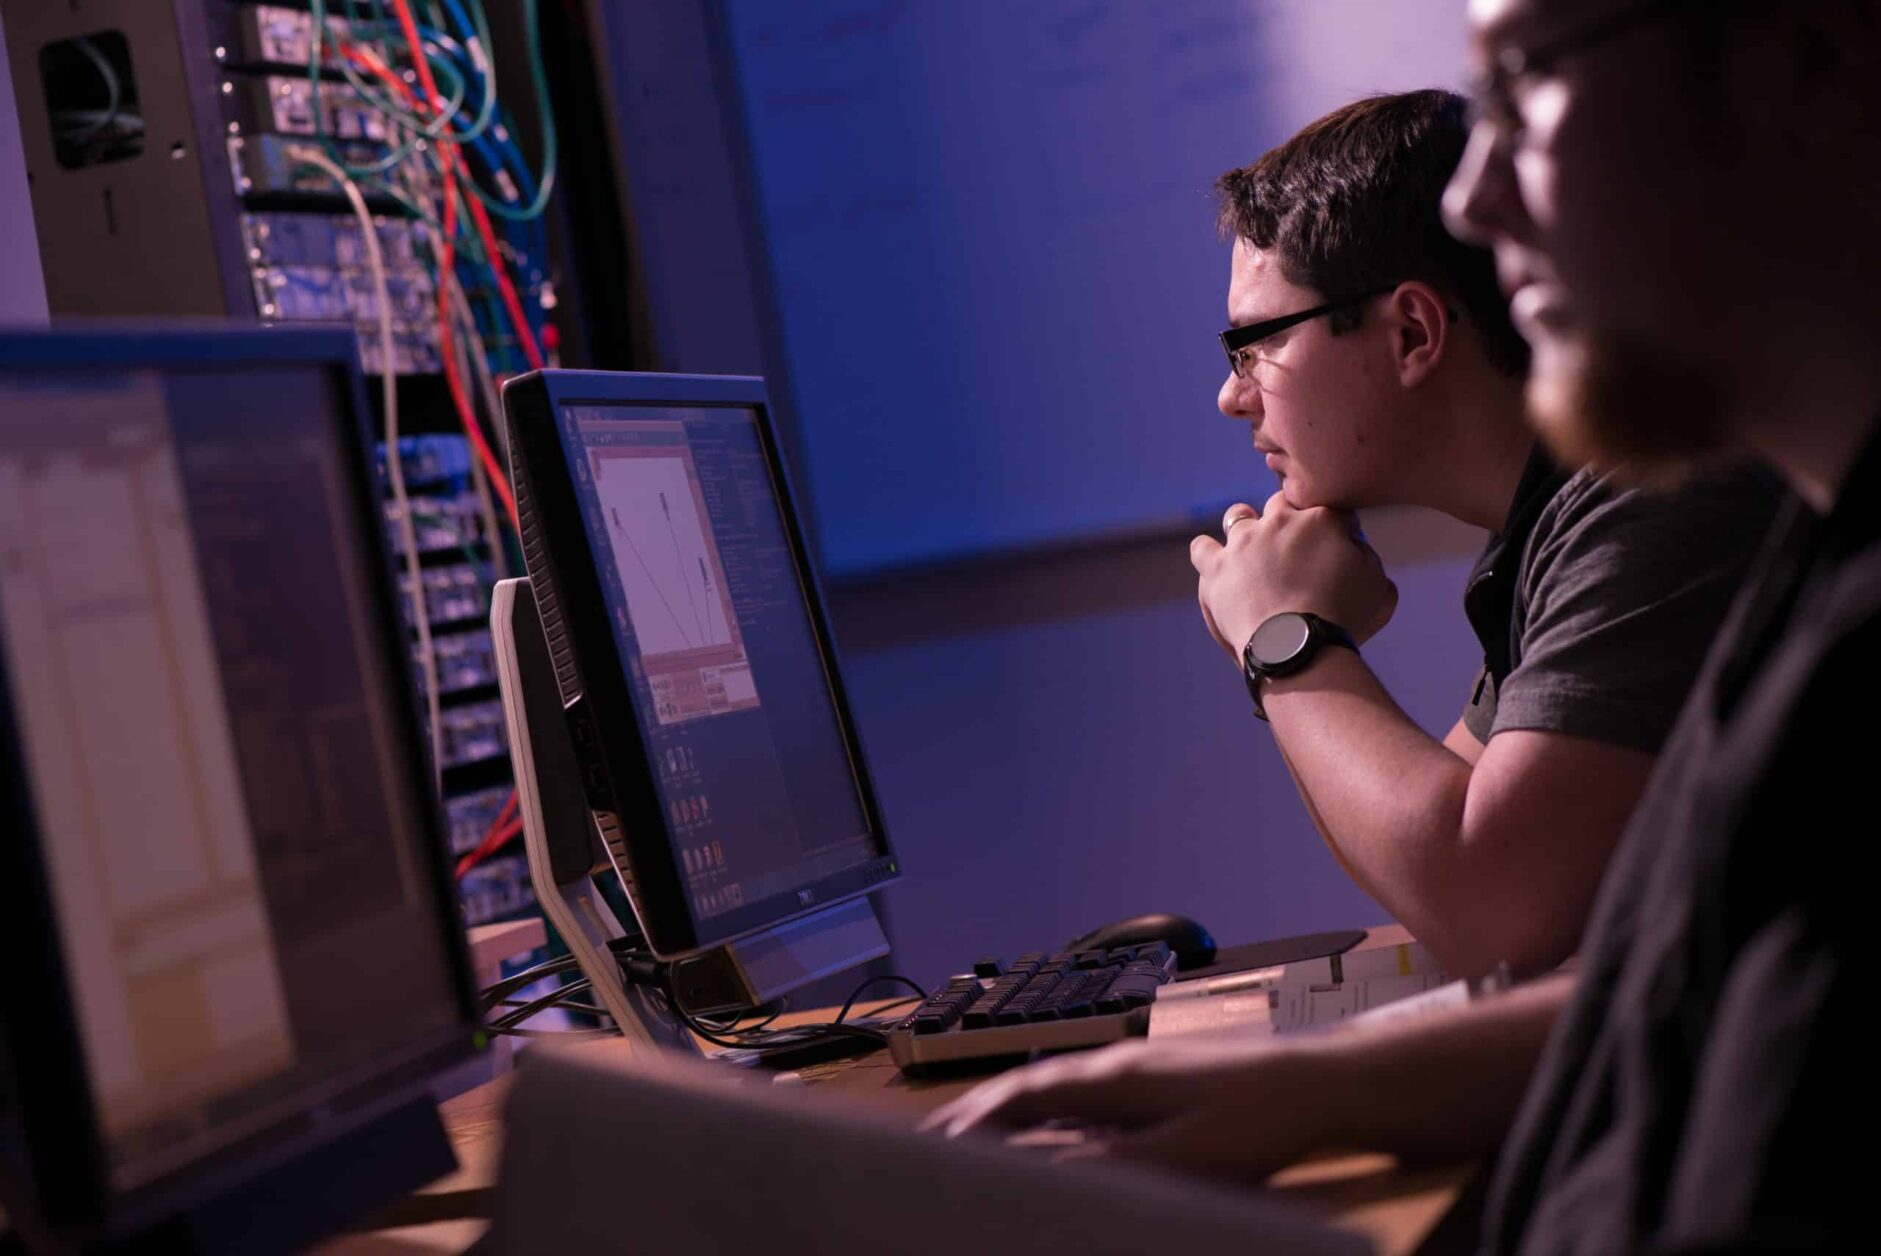 Two male students work on computer screen coding in a dimly sit room with computer wires and books.